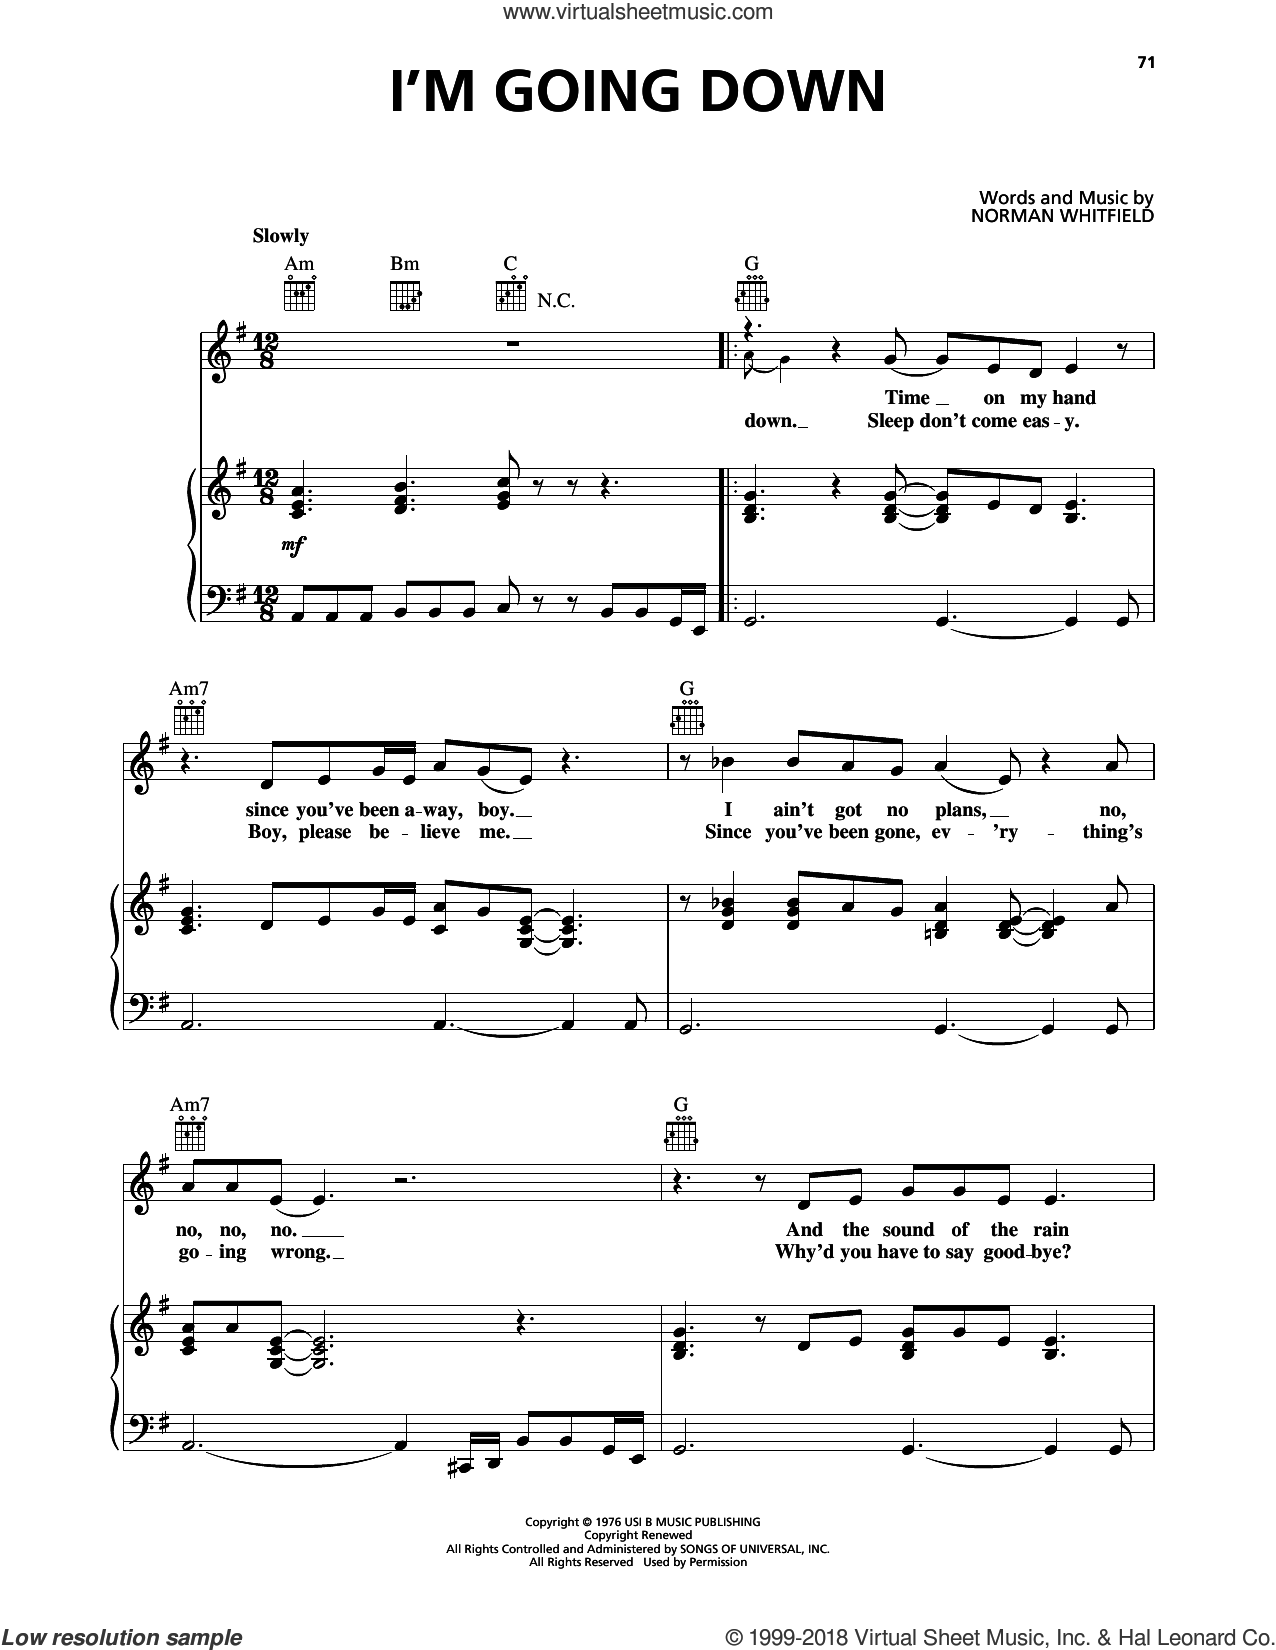 I'm Going Down sheet music for voice, piano or guitar by Mary J. Blige and Norman Whitfield, intermediate skill level